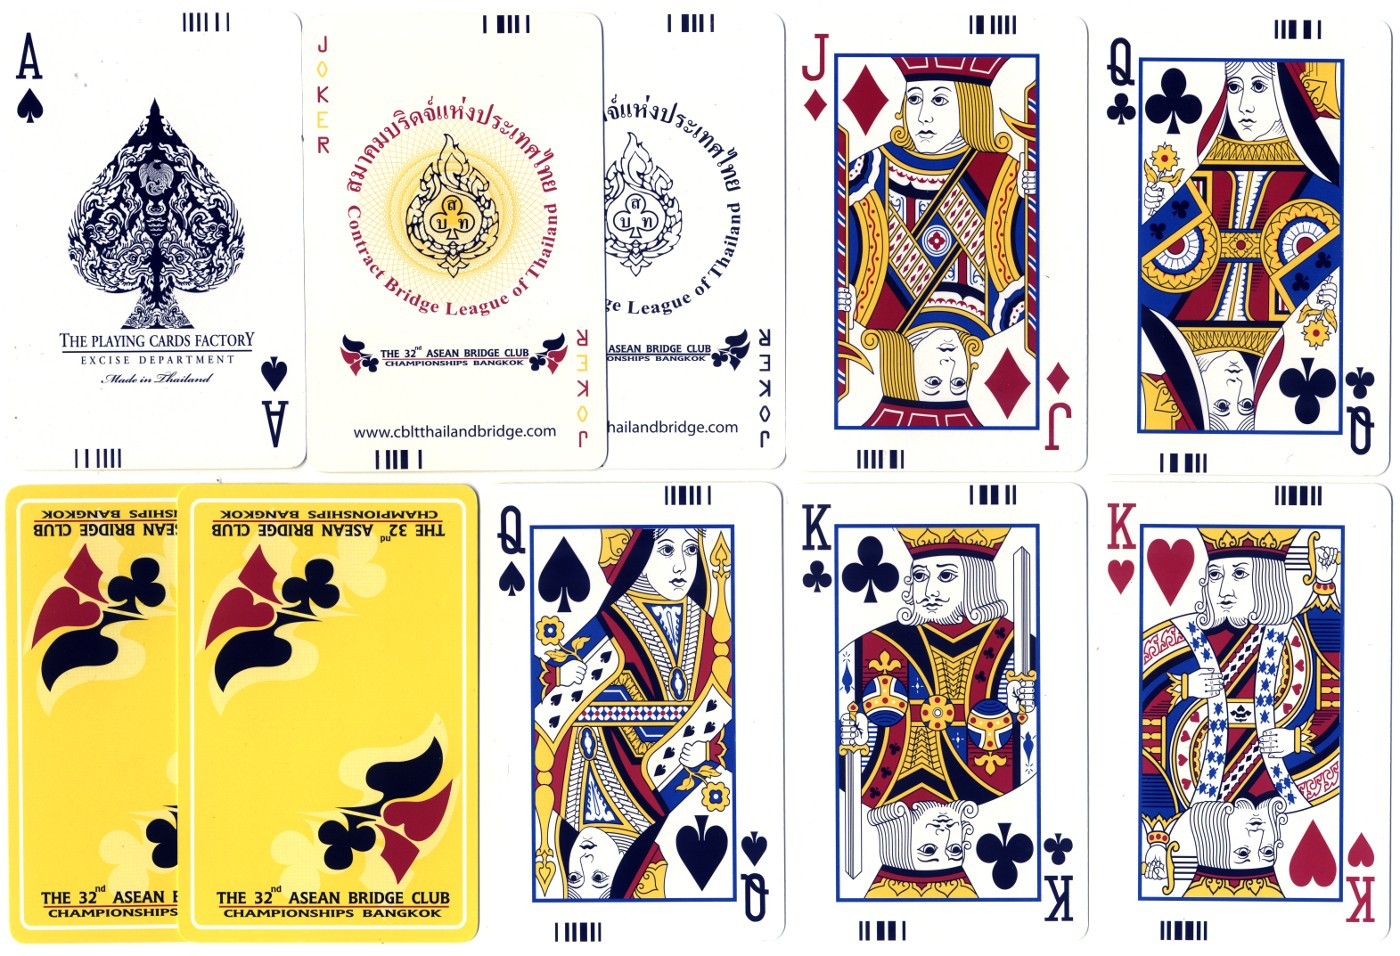 32nd Asean Bridge Club Championships (Bangkok) Playing Cards